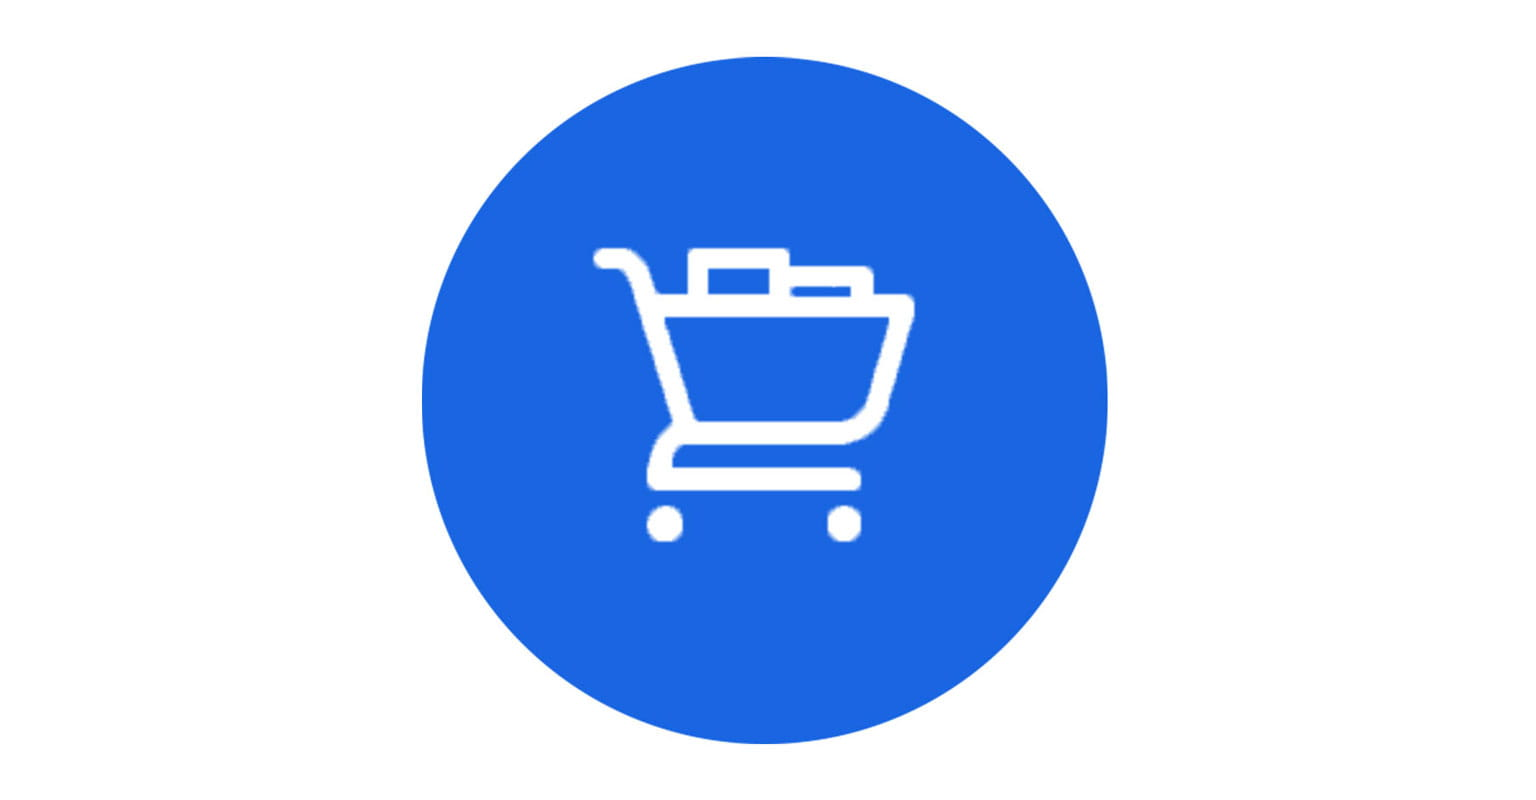 Trolley icon on blue circular background to represent latest promotions